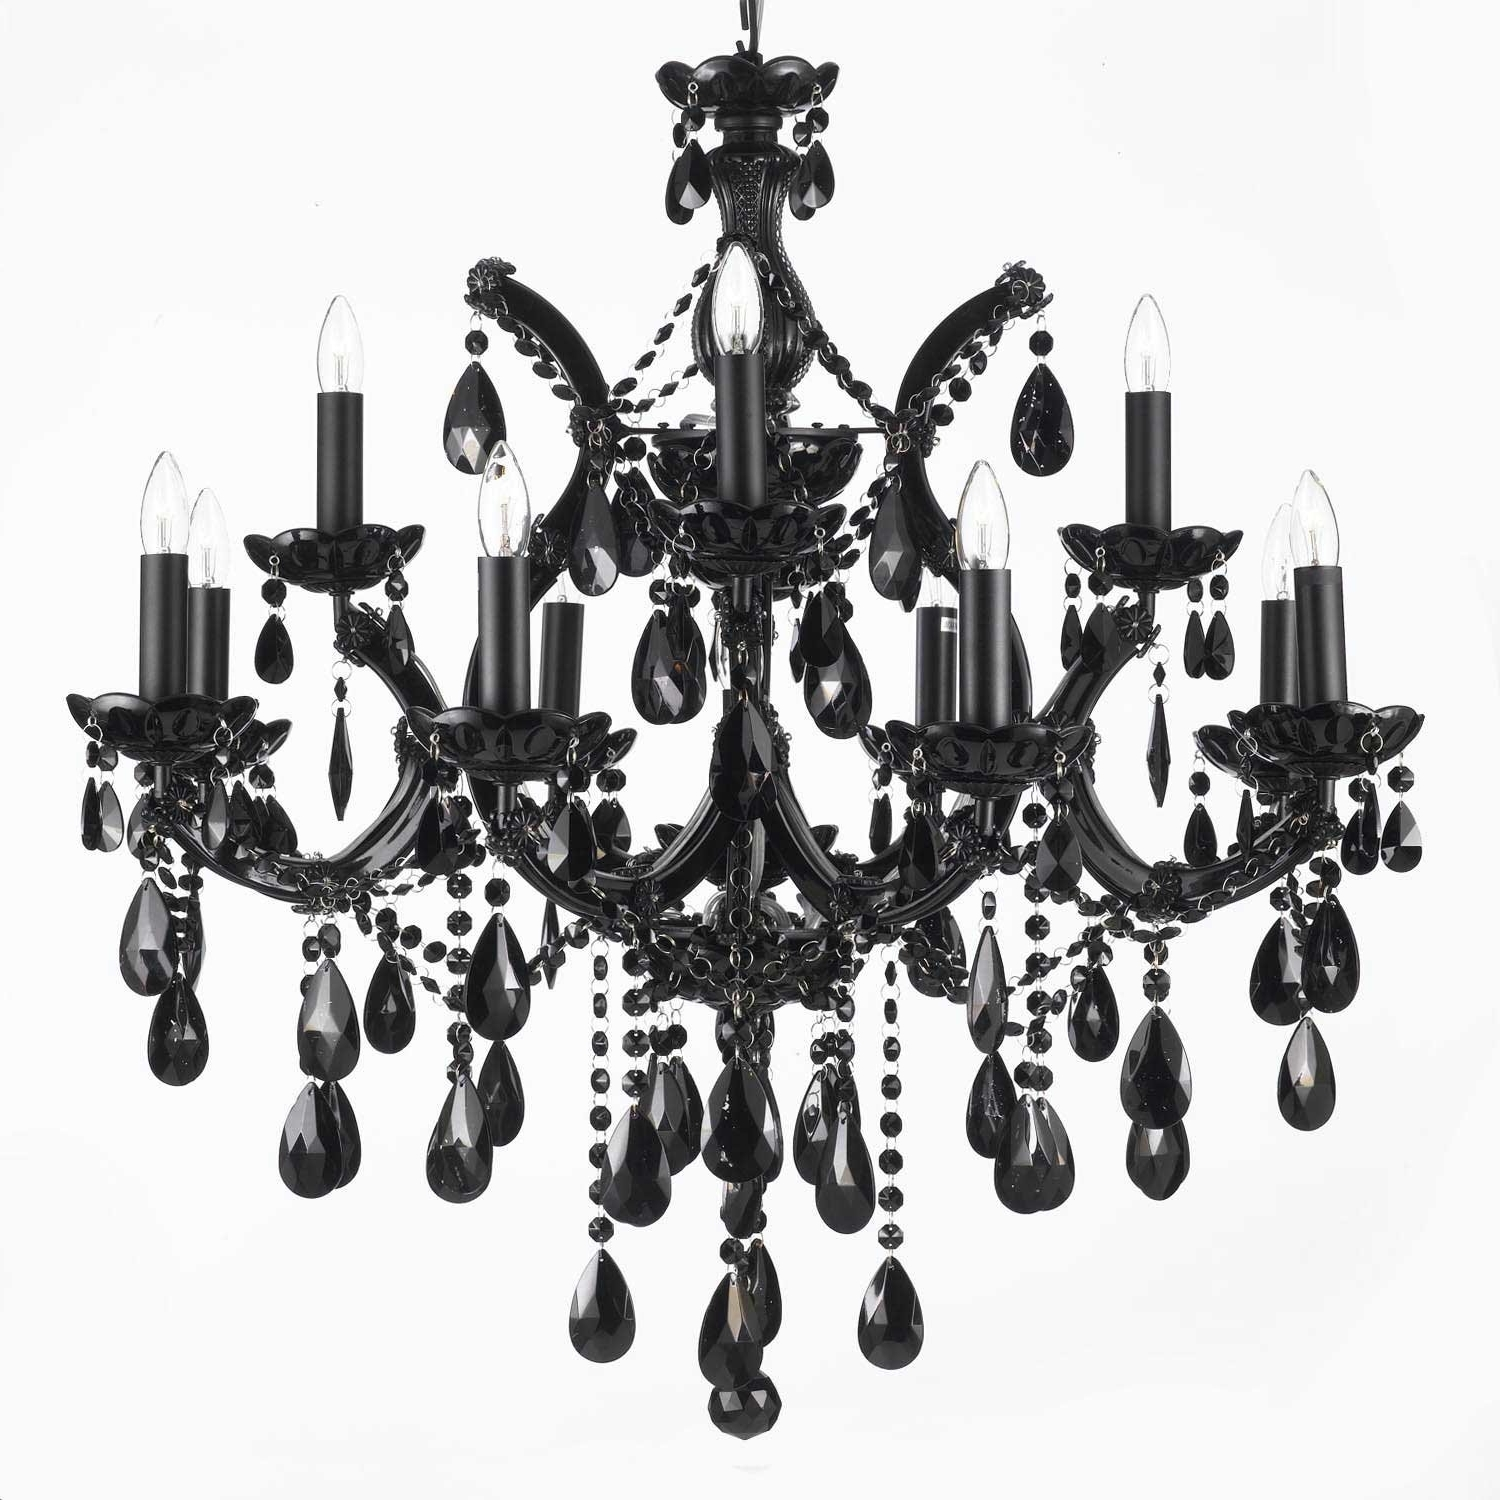 2018 Jet Black Chandelier Crystal Lighting 30X28 – – Amazon Pertaining To Black Chandeliers (View 1 of 15)